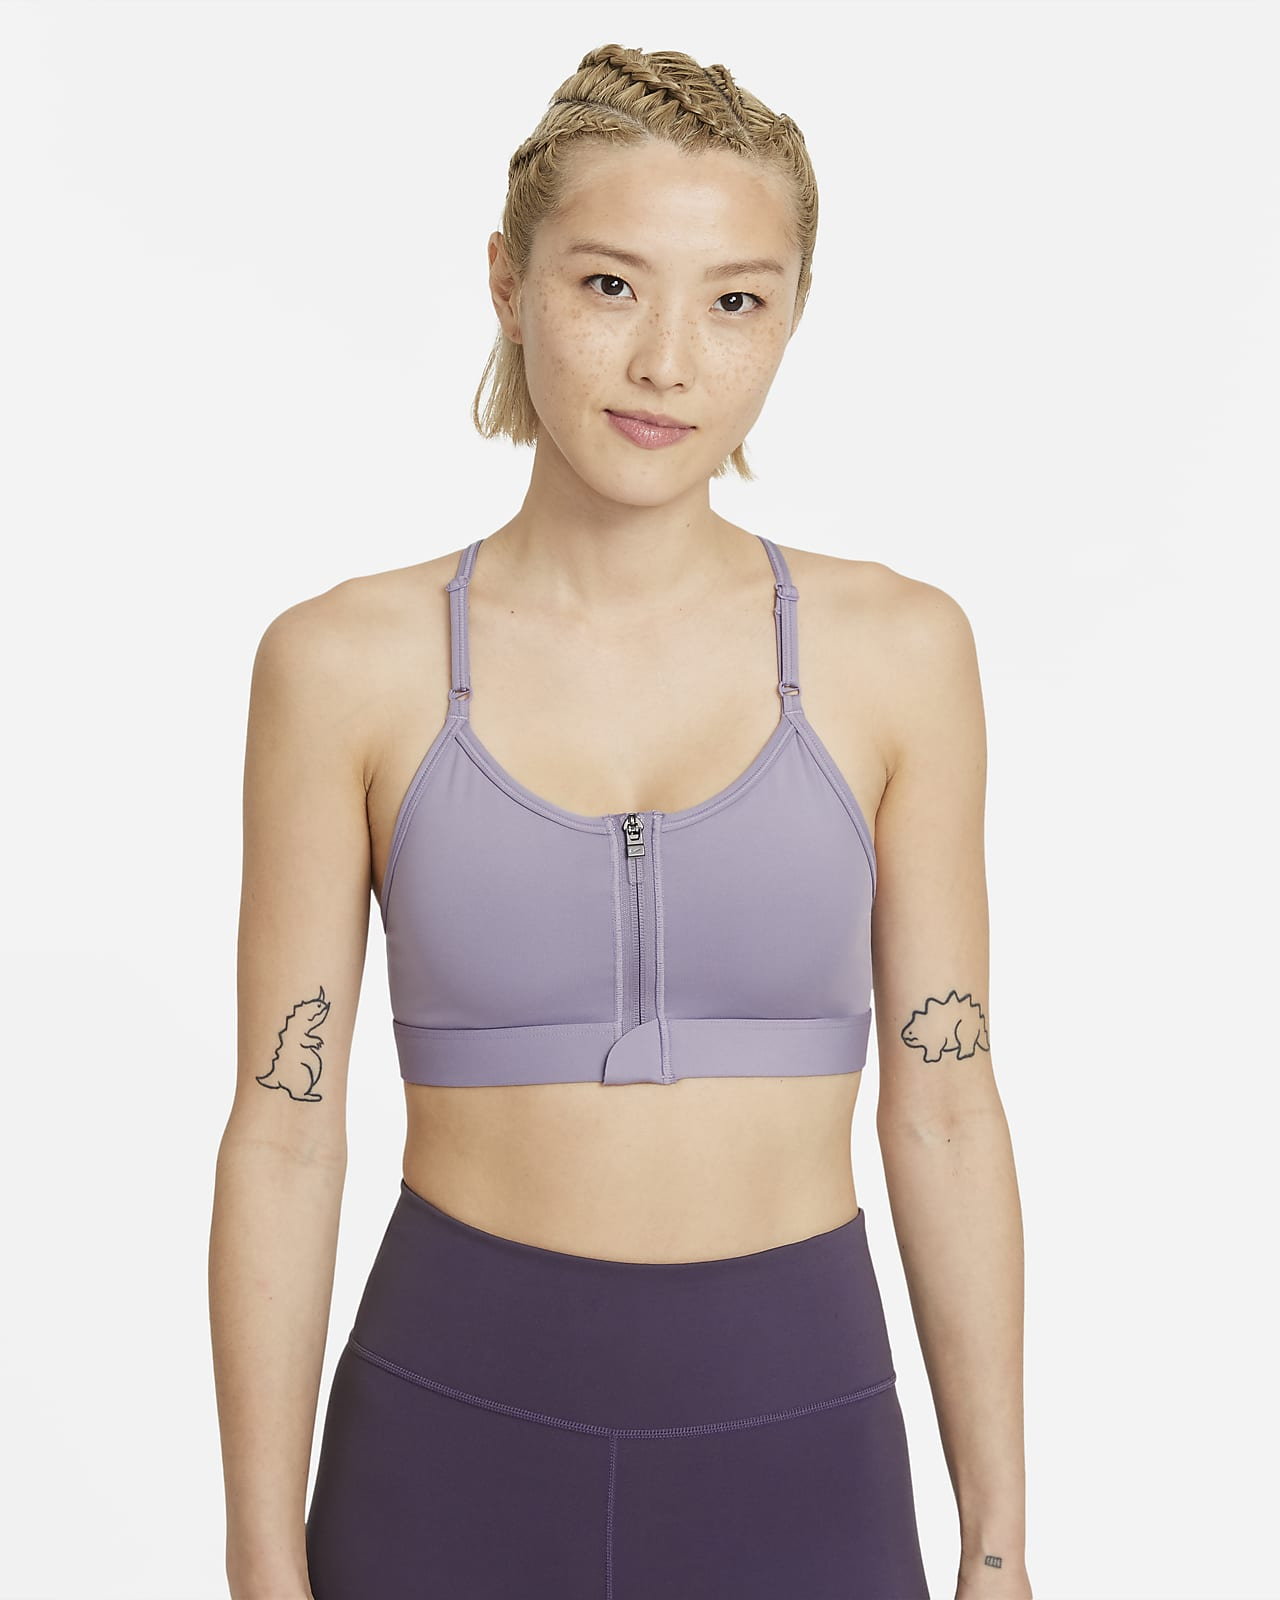 Nike Dri-FIT Indy Zip-Front Women's Light-Support Padded Sports Bra